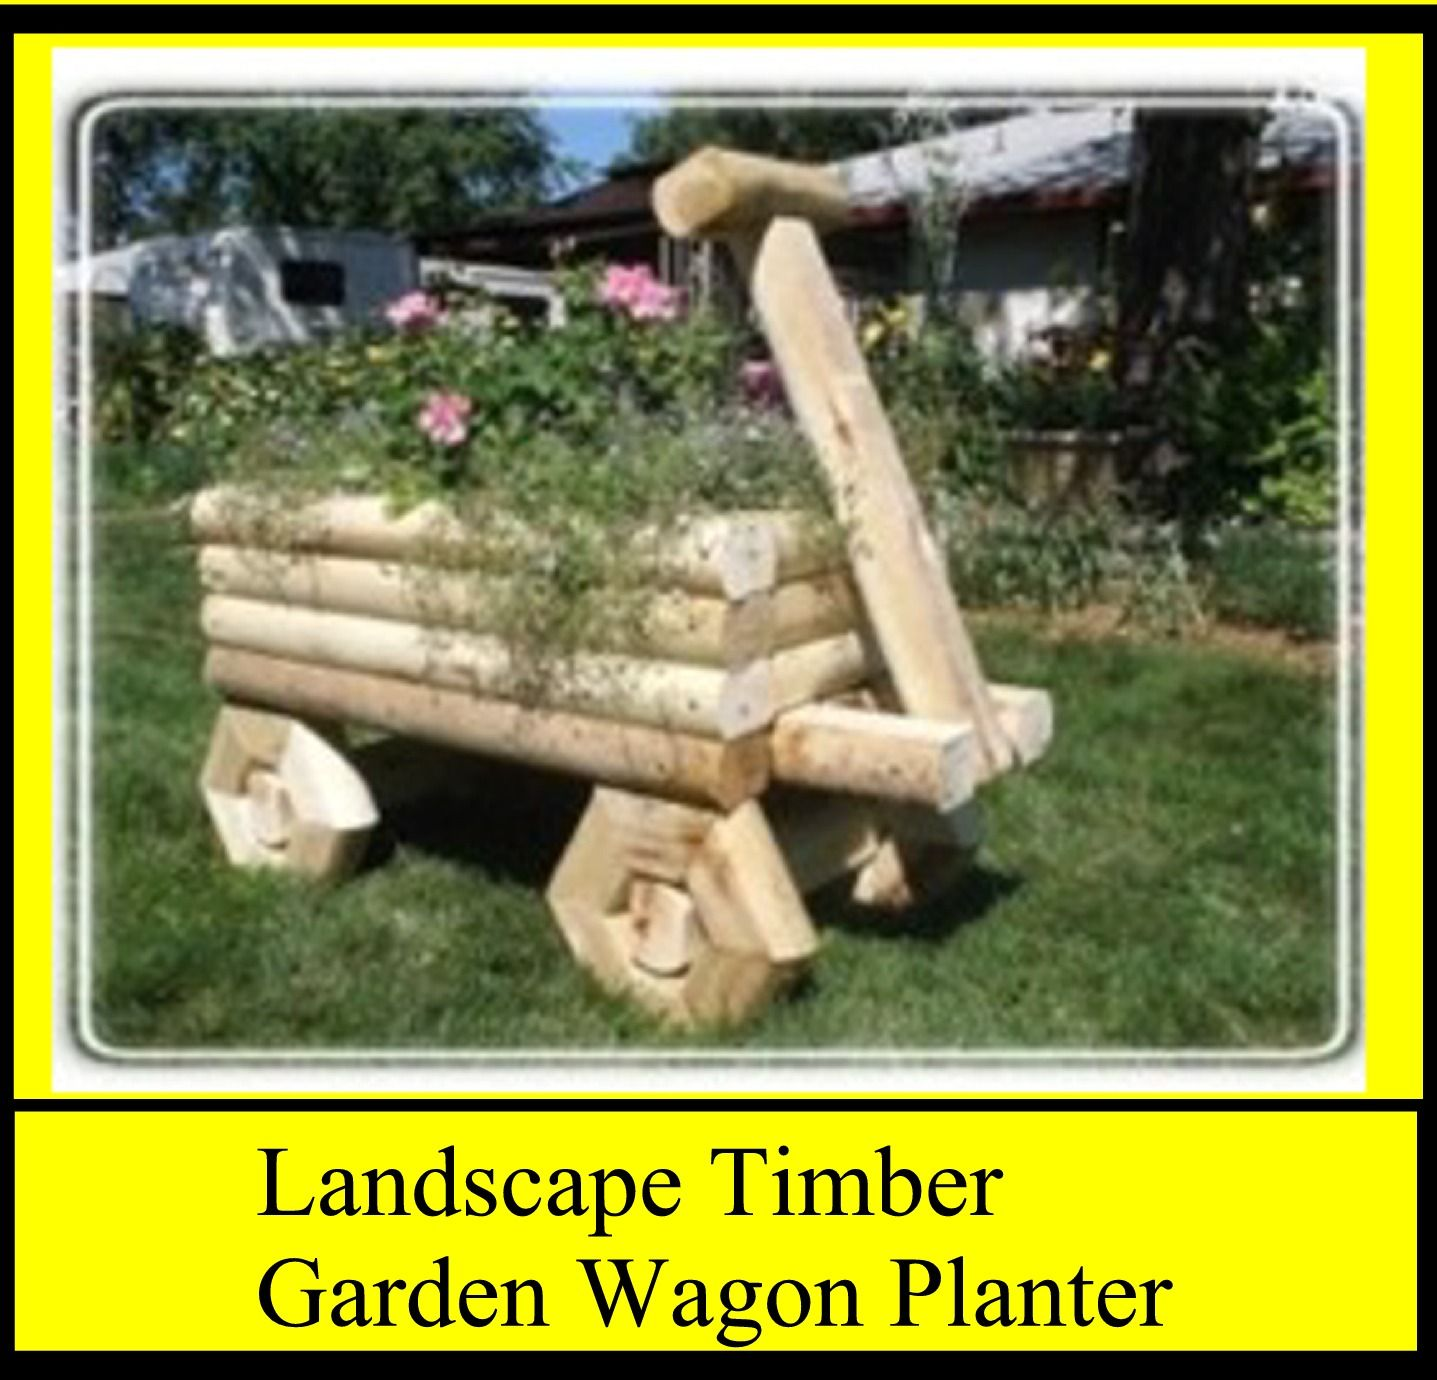 Landscape Timber Garden Wagon Planter